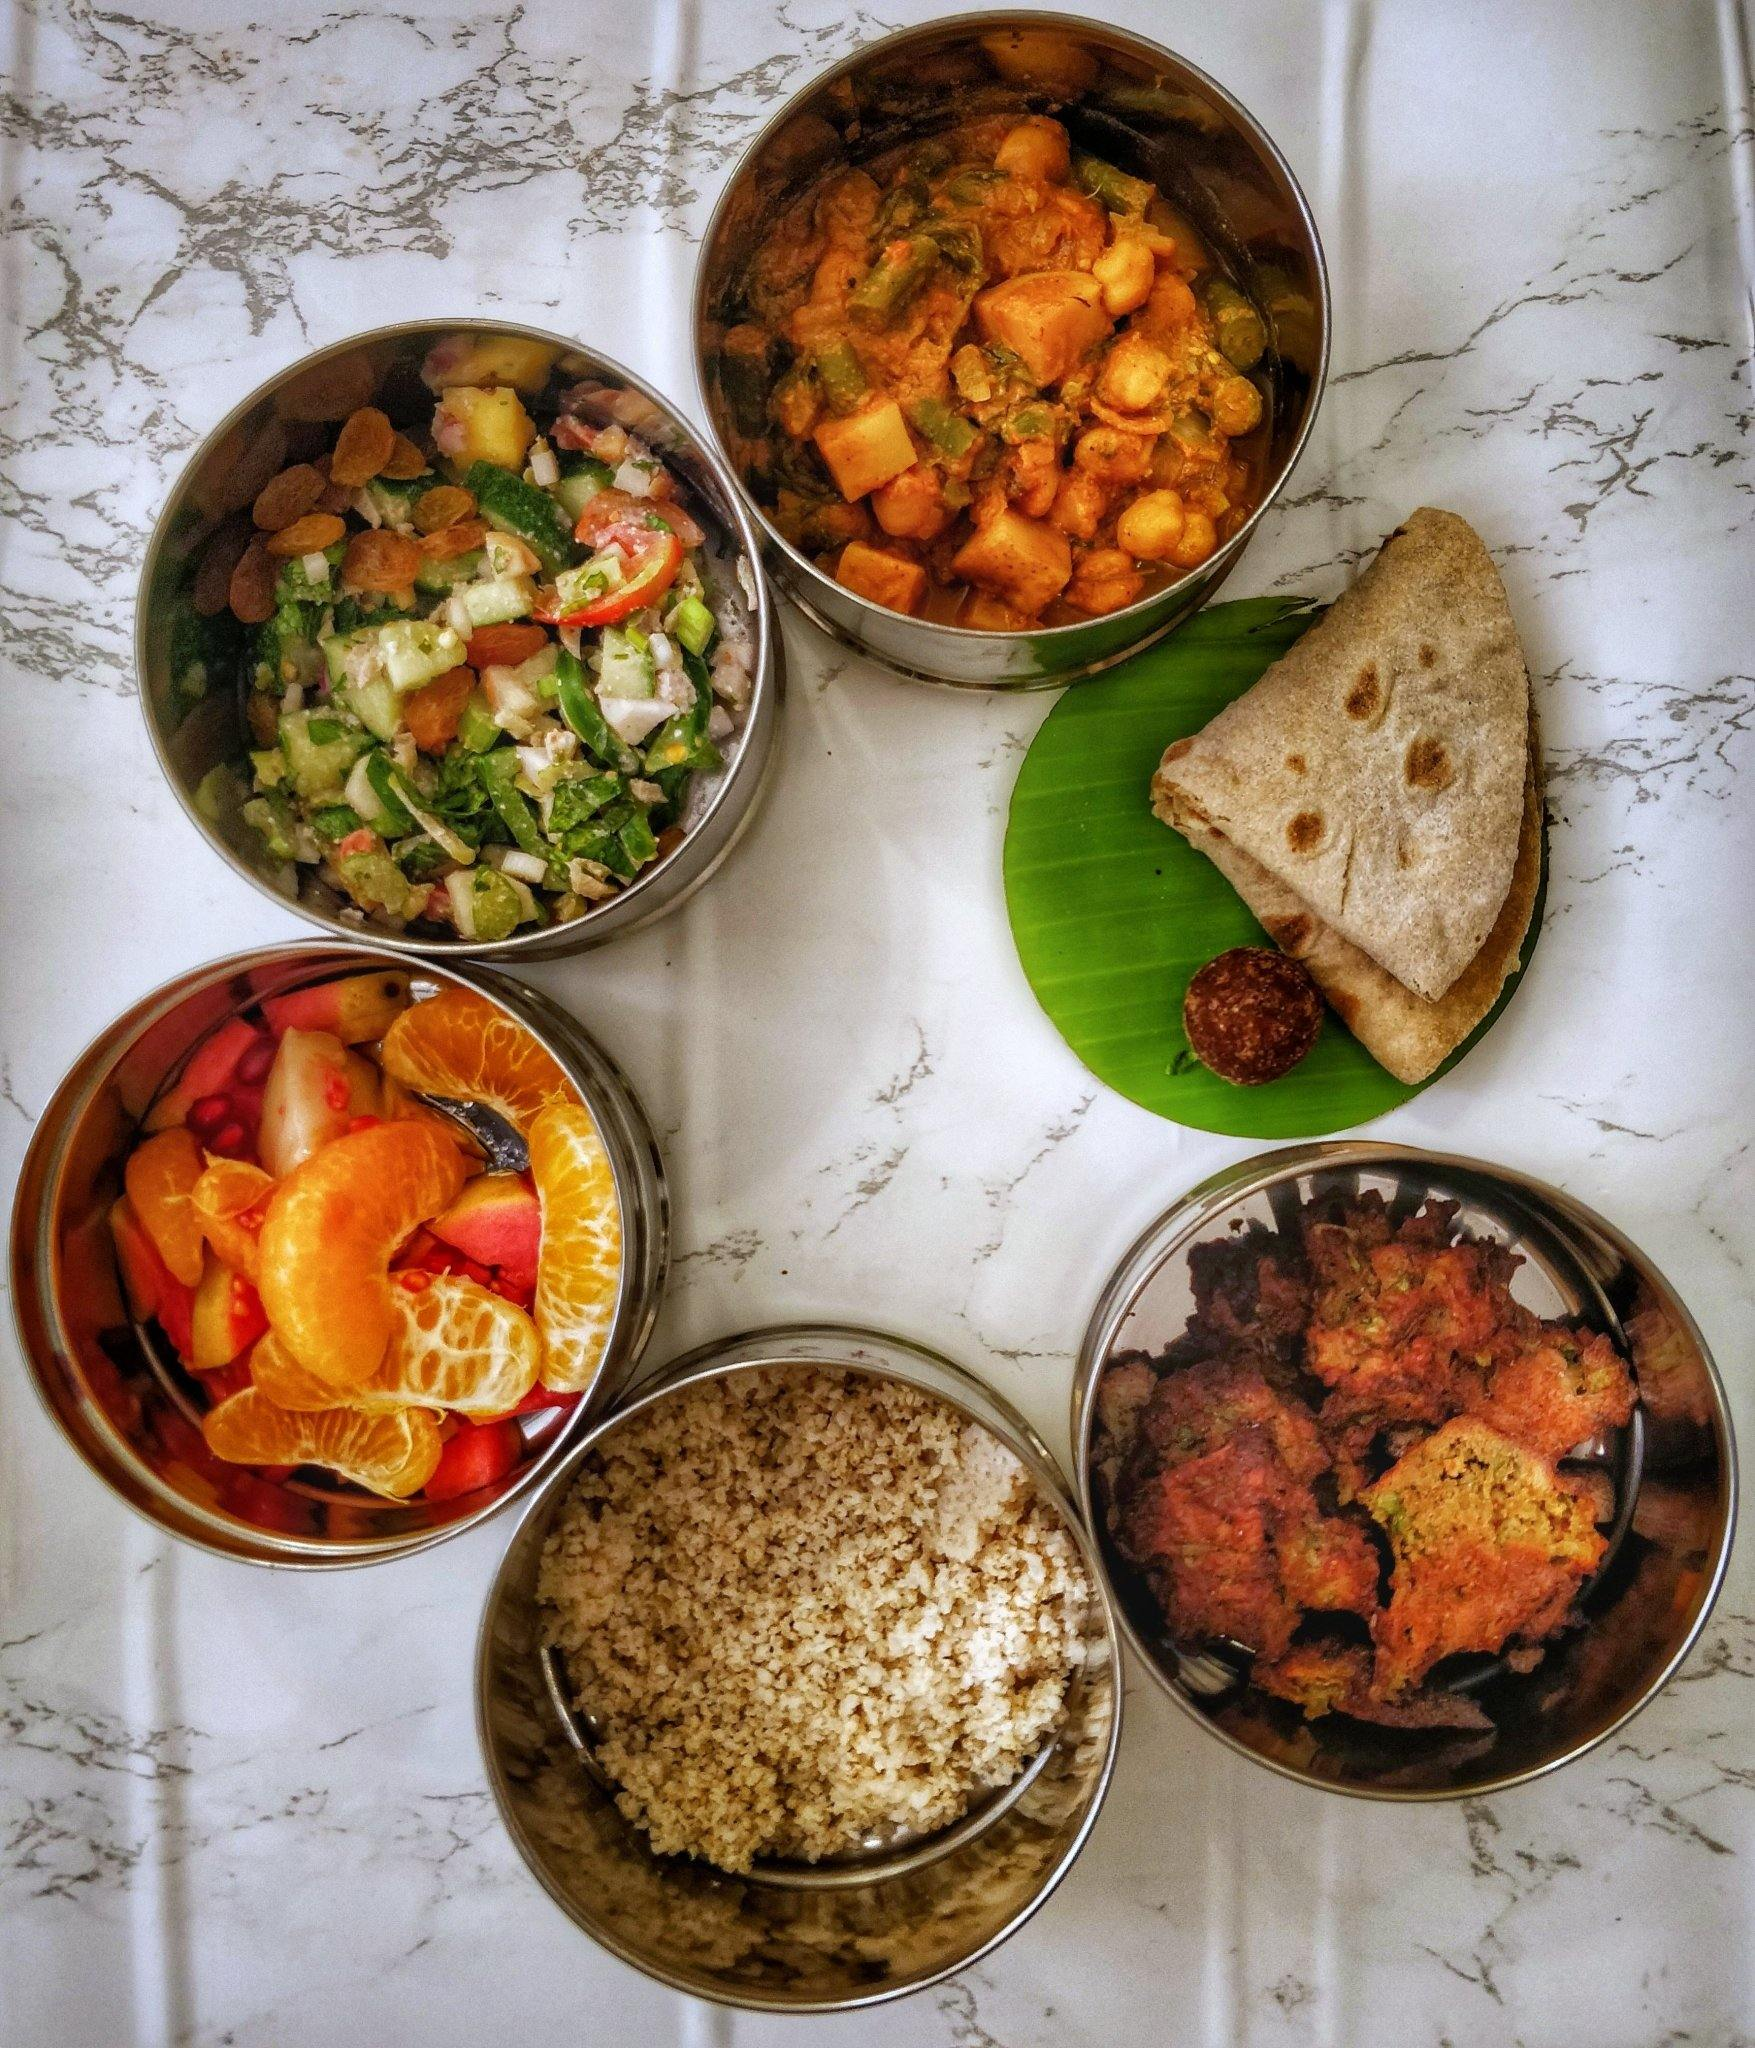 Plant-Based Desi Gourmet Meals - Starter Pack | Healthy Food | Vegan | Lunch & Dinner | Nutrition Balanced Diet | Restaurants Style | Weight Loss Diet | Whole Food Plant Based Meal - SampoornaAhara.com